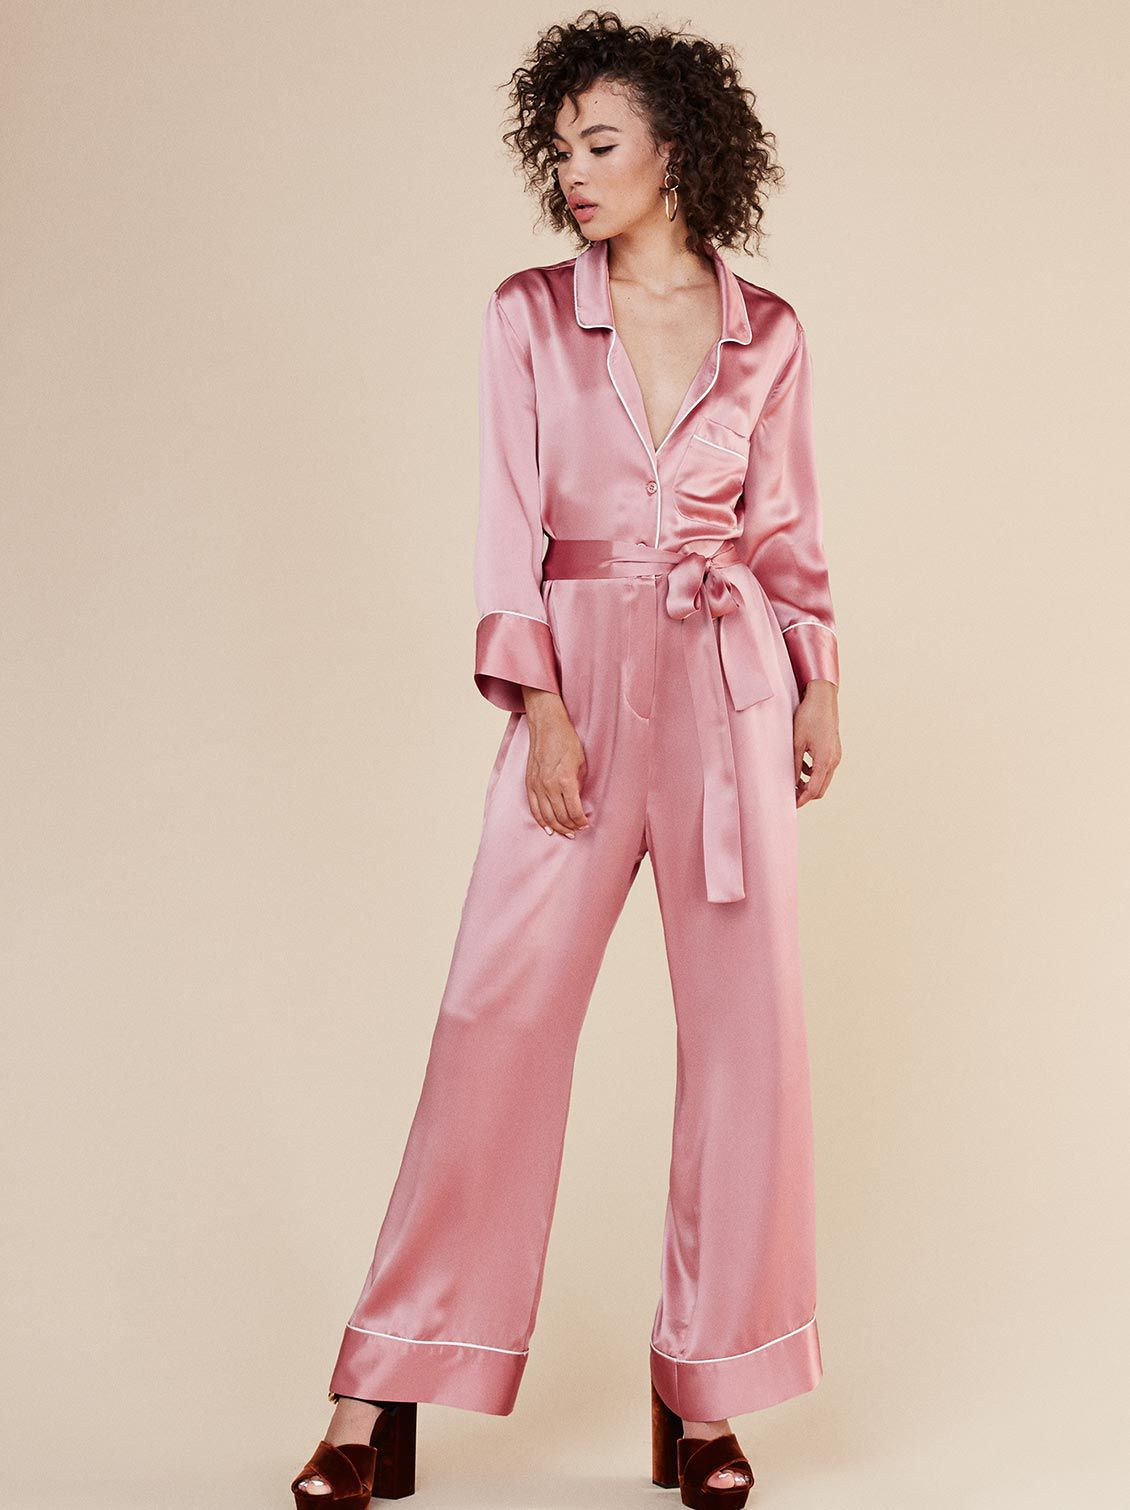 A model wearing a pink satin jumpsuit that looks like pajamas